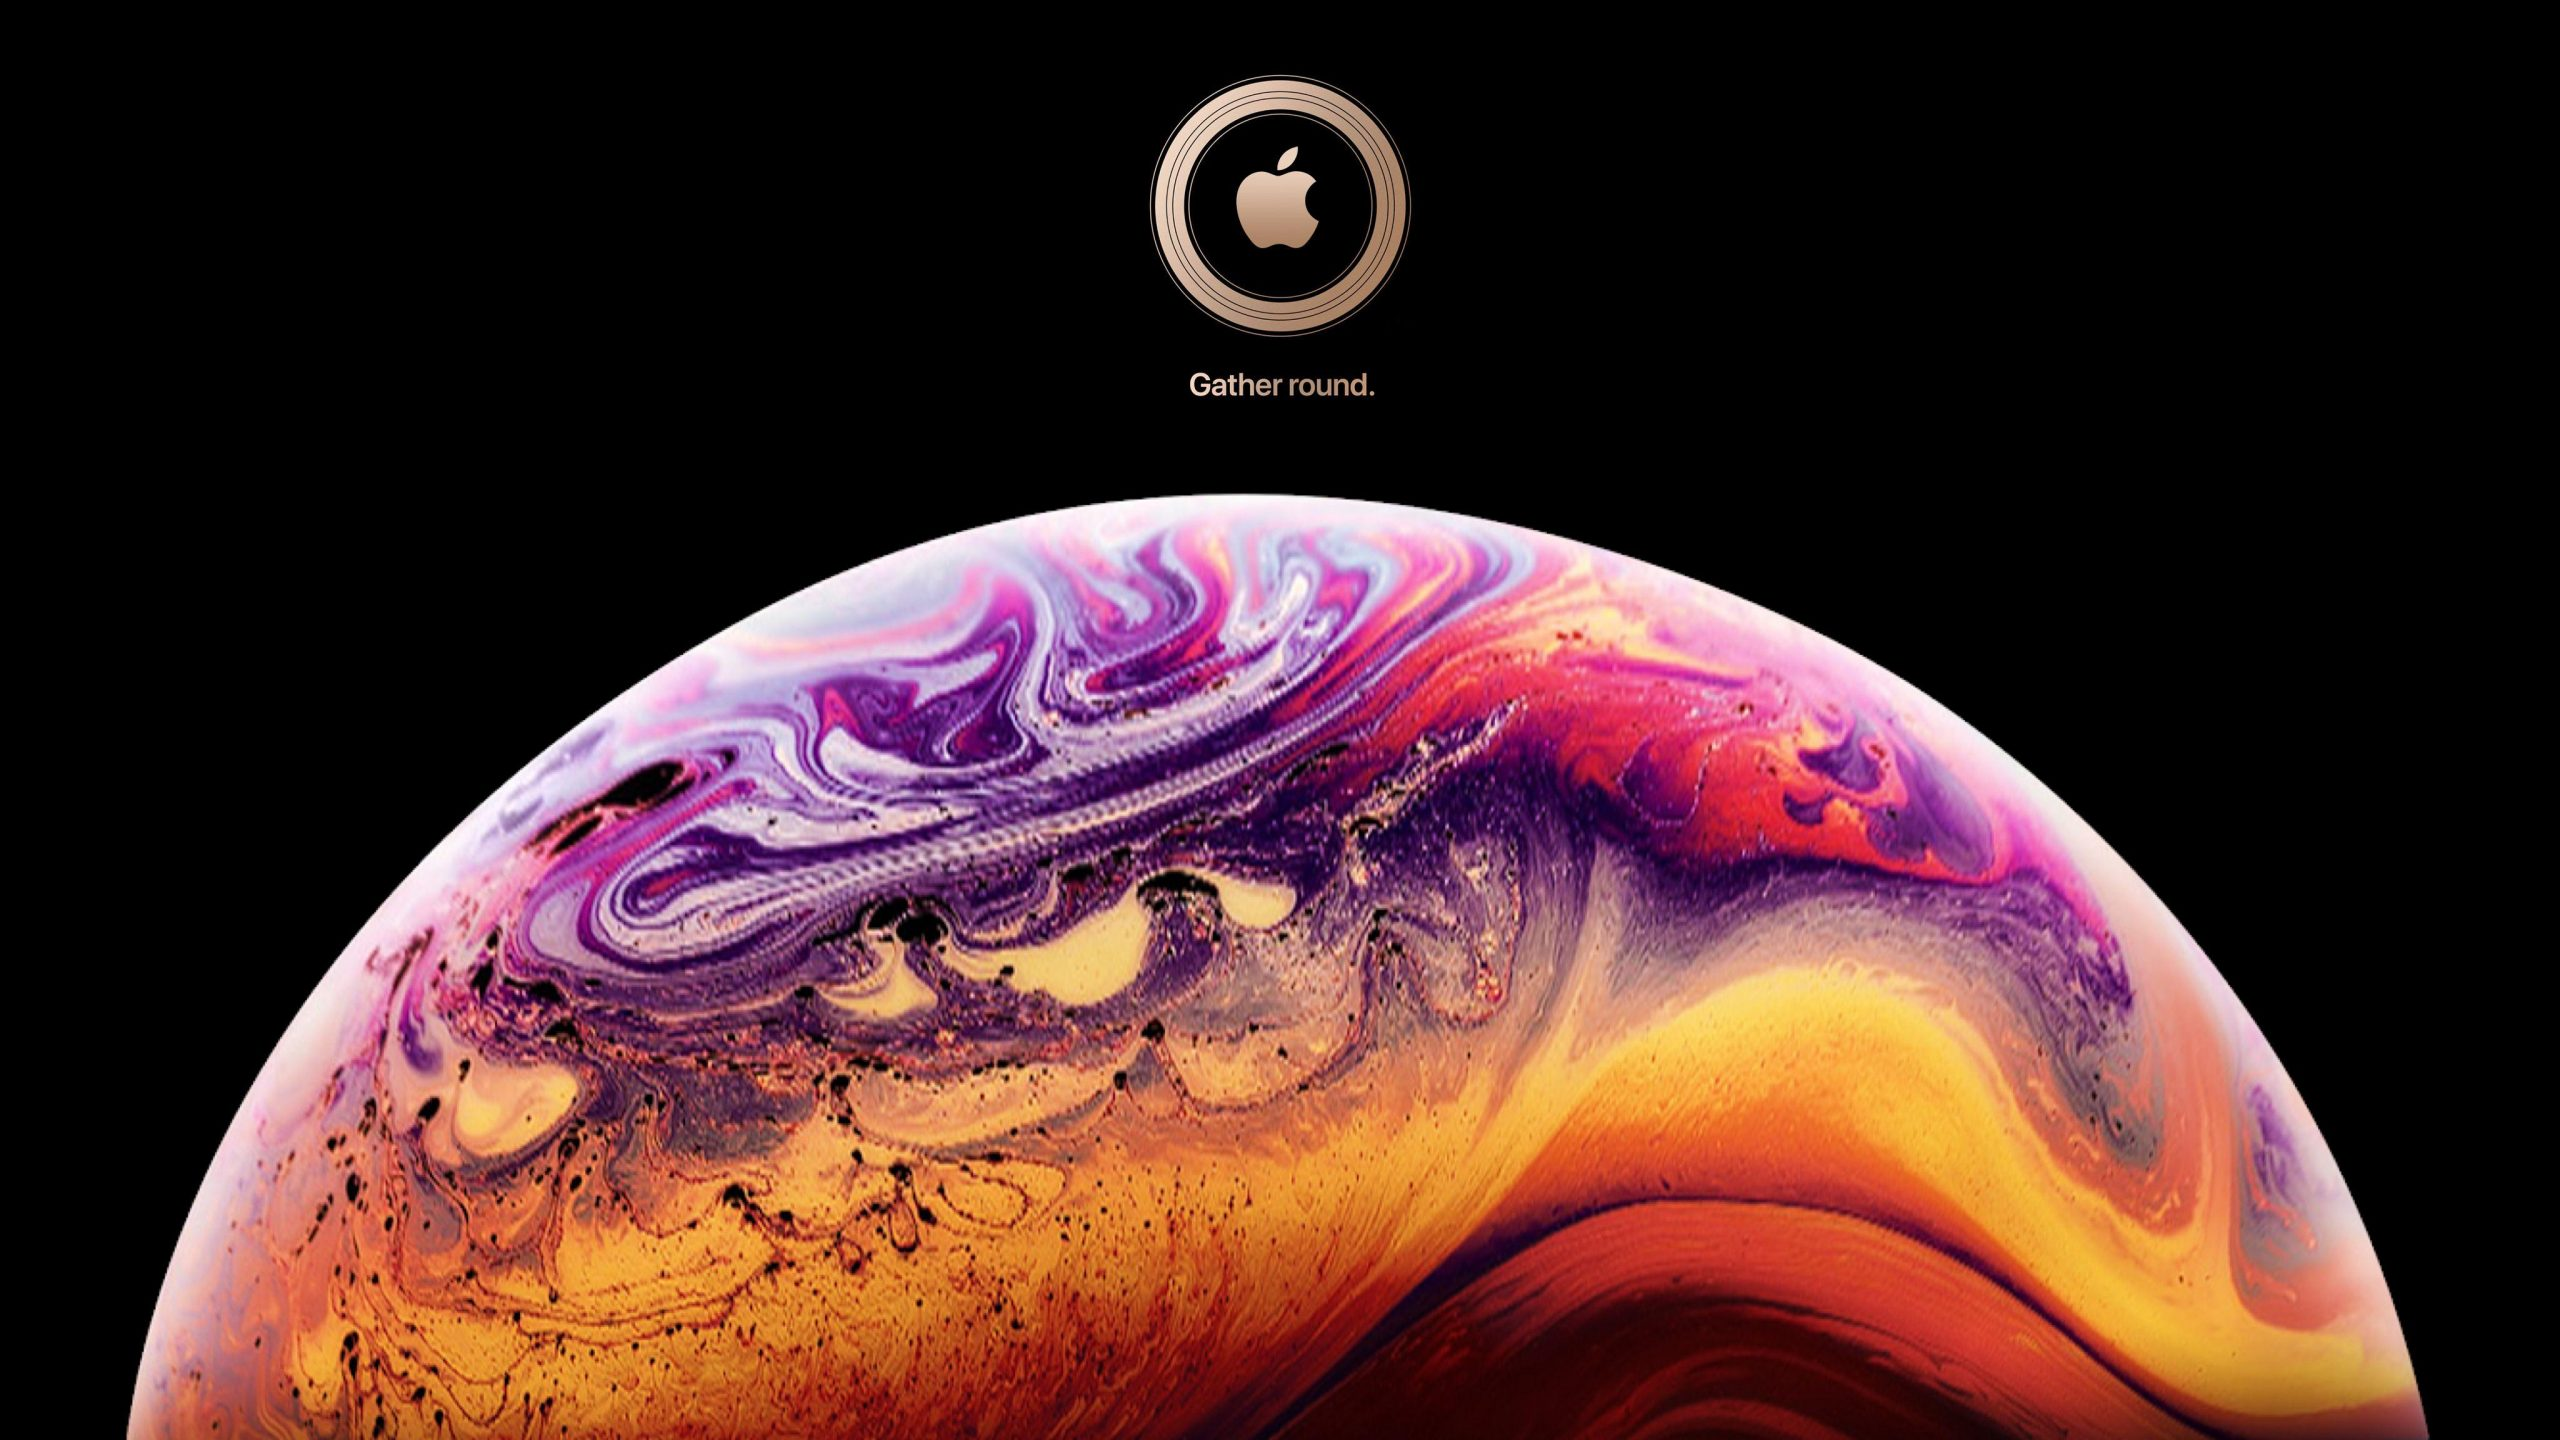 iphone xs 4k wallpapers